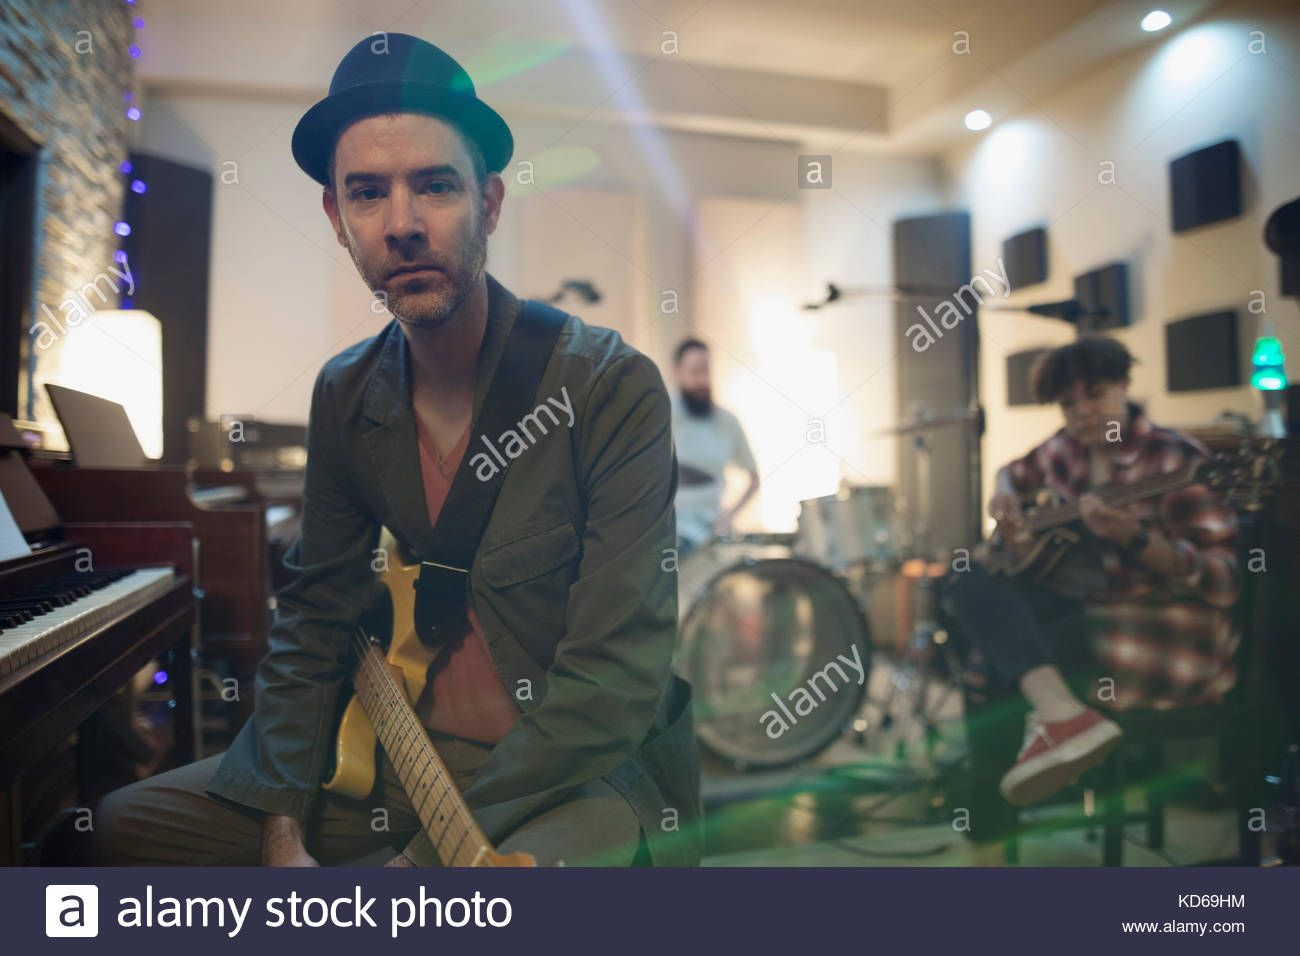 Portrait serious, confident musician with guitar sitting at piano in recording studio - Stock Image